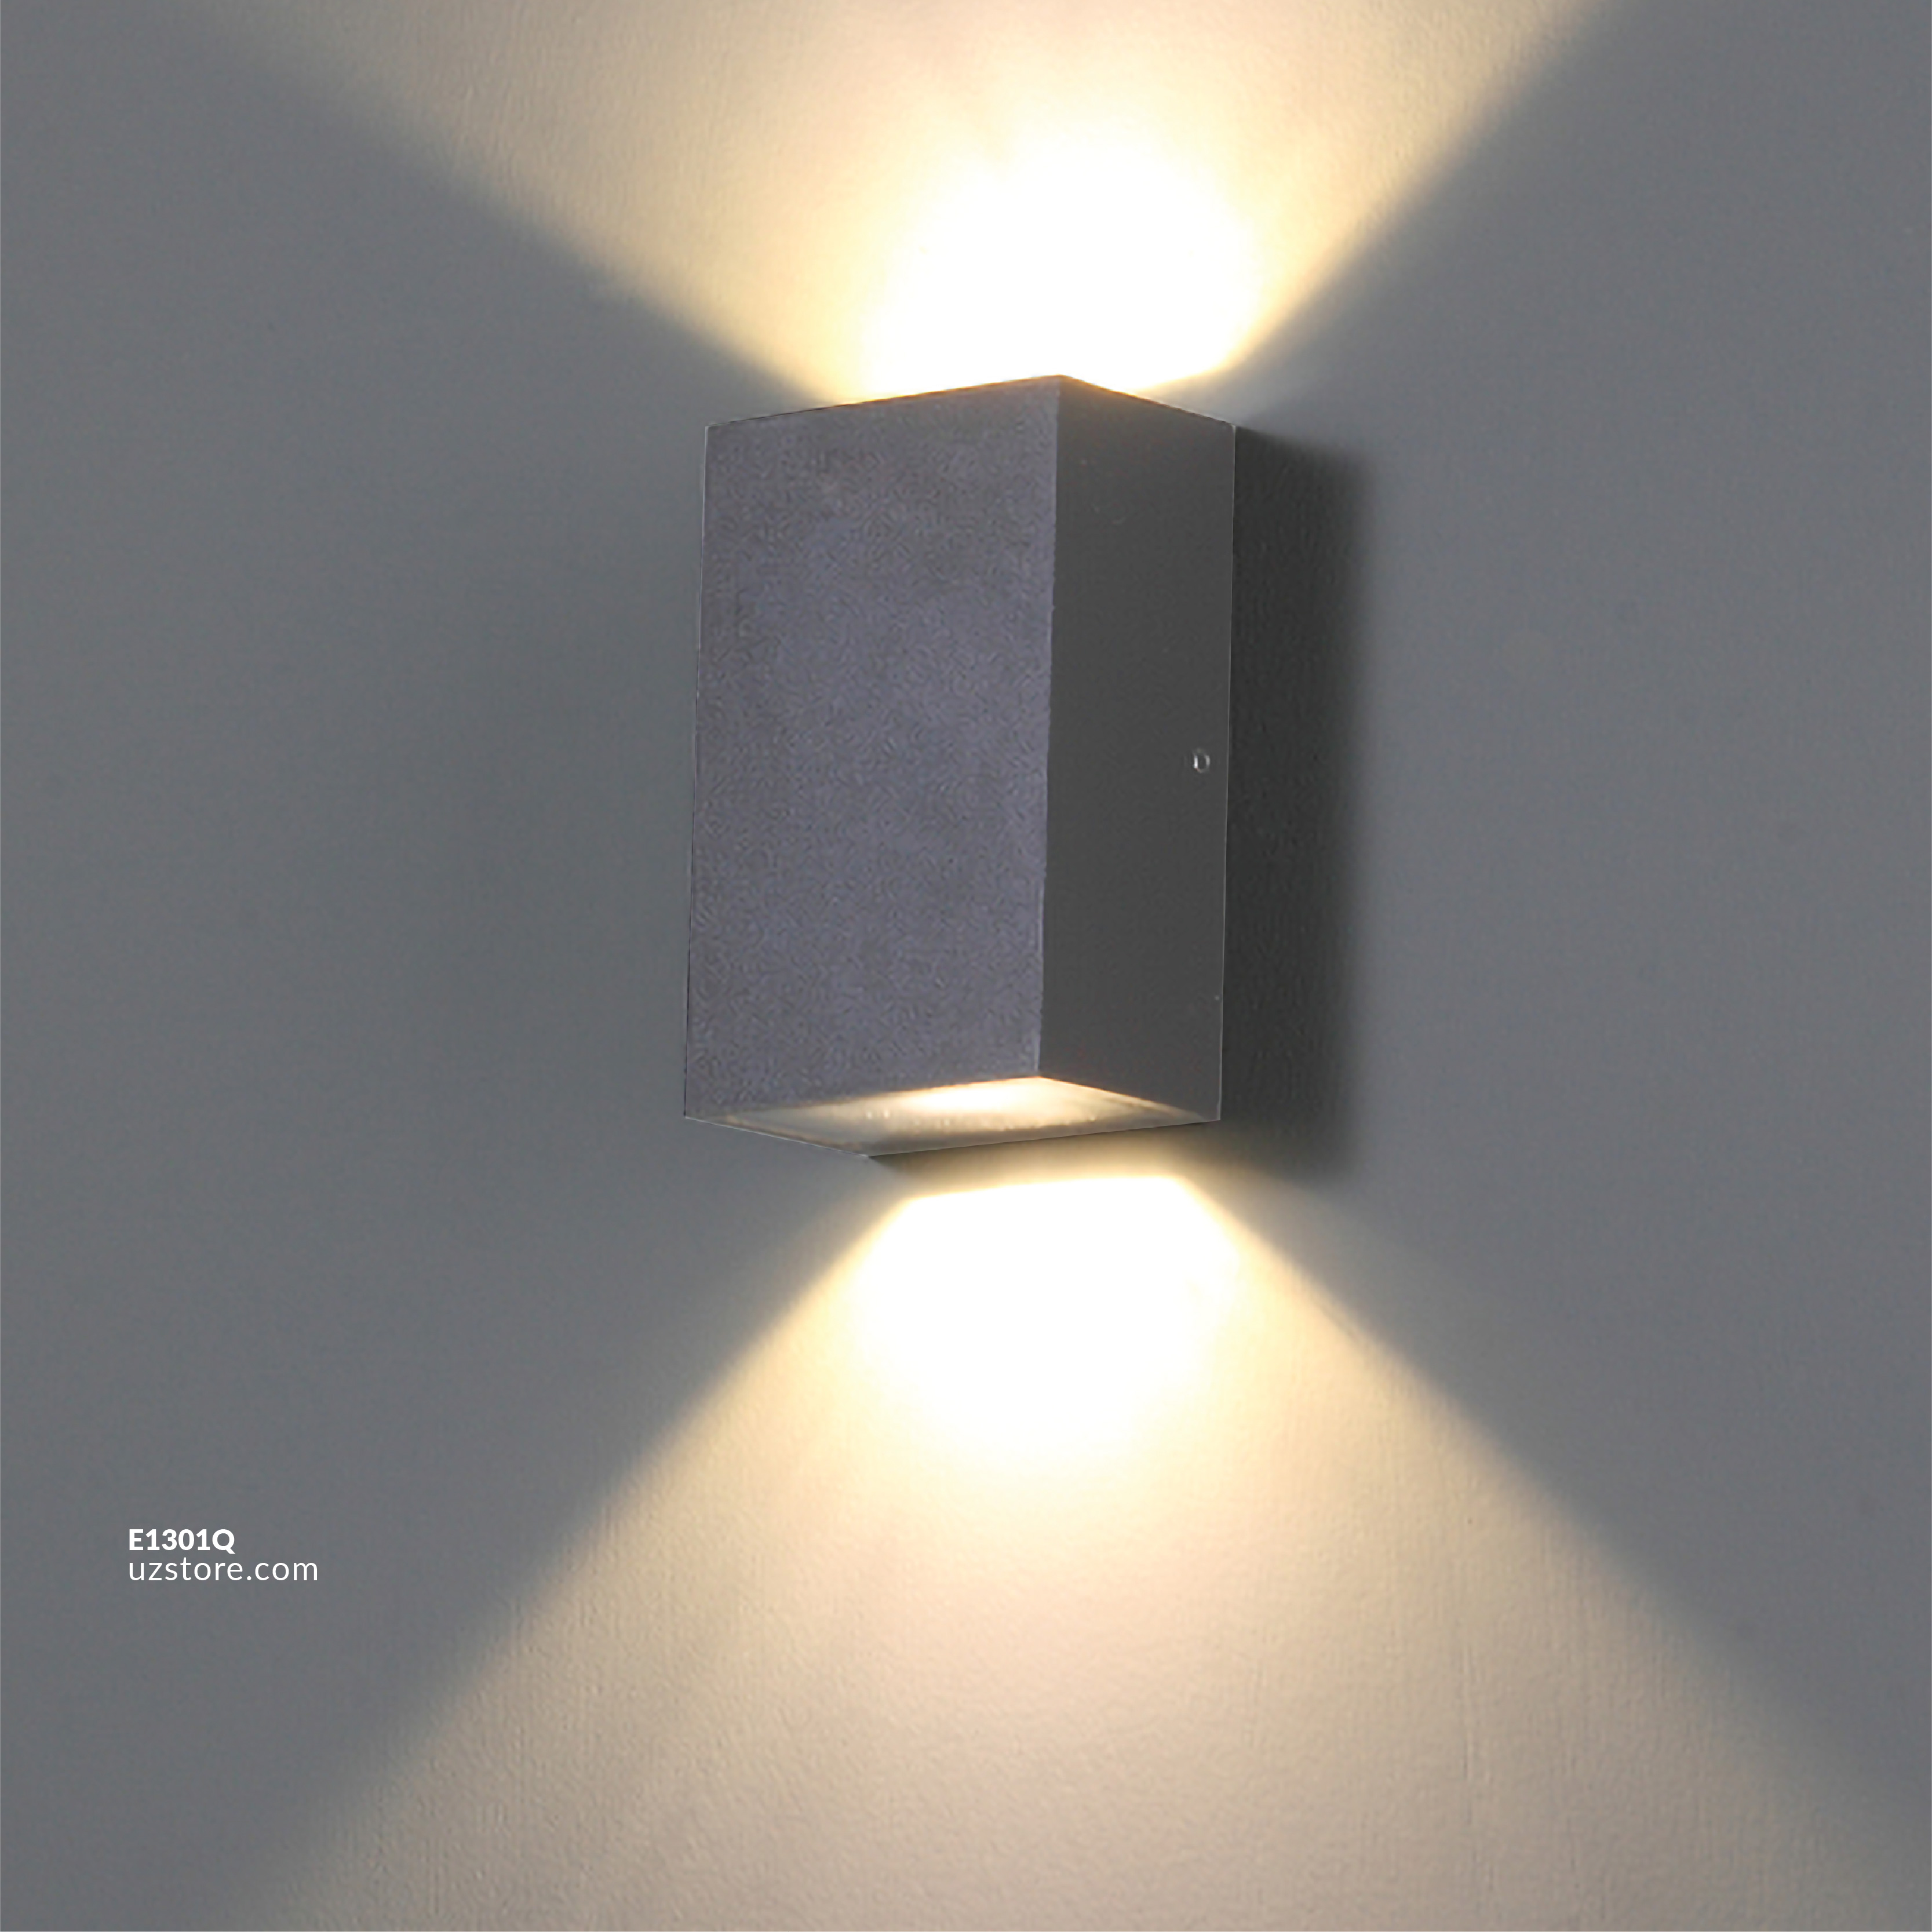 LED Outdoor Wall LIGHT W19 3W WW Silver